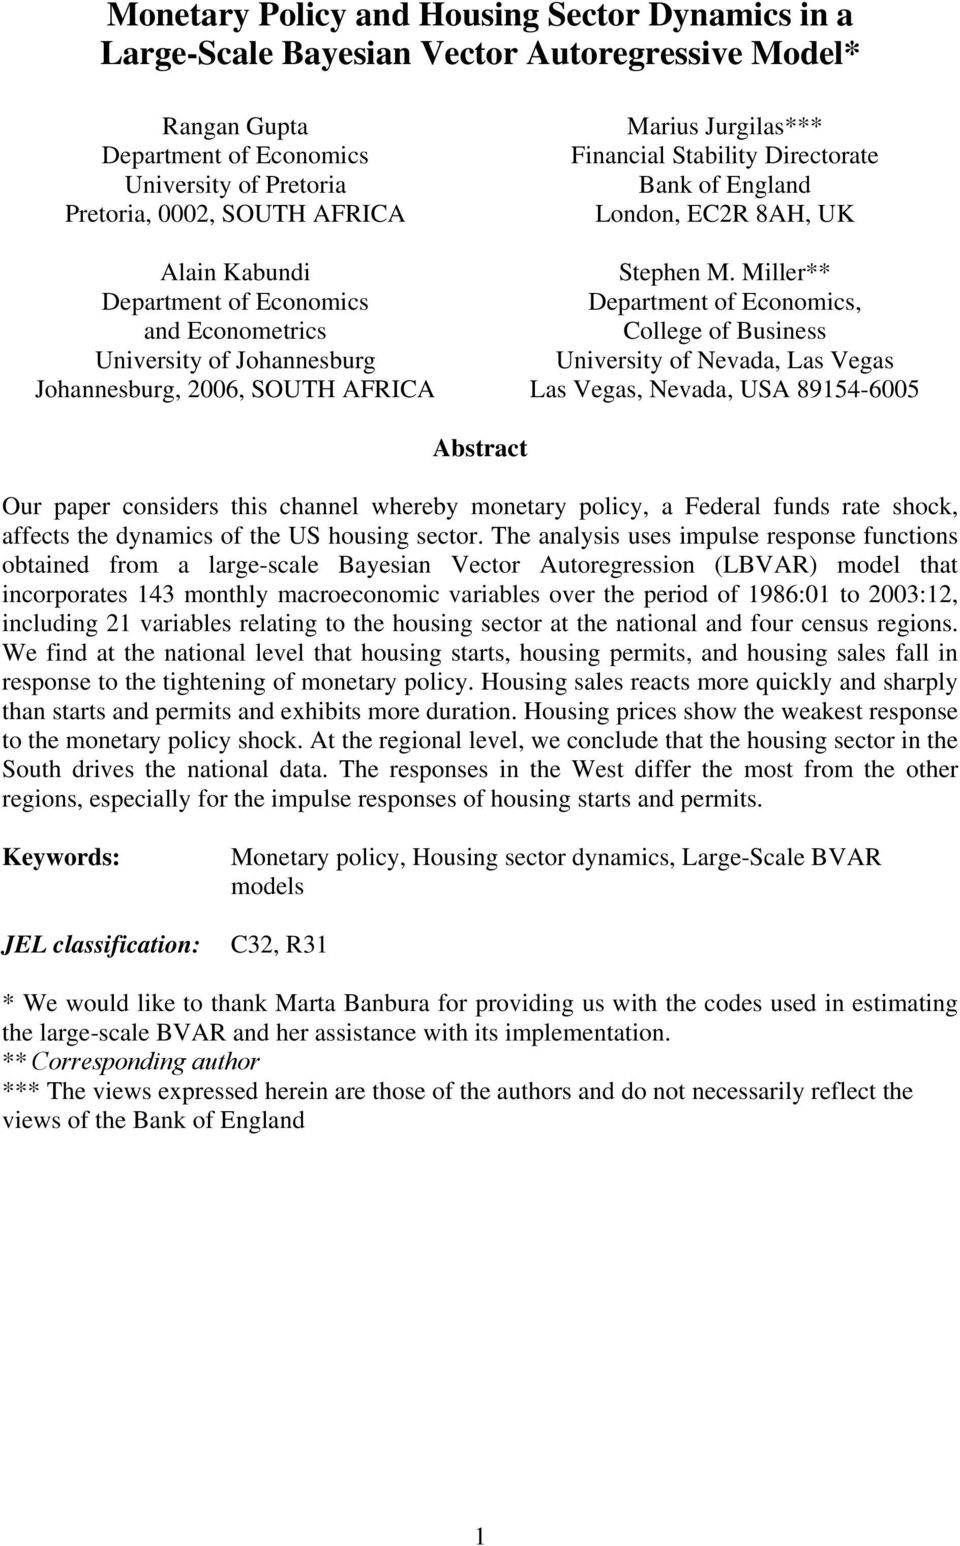 Miller** Department of Economics, College of Business University of Nevada, Las Vegas Las Vegas, Nevada, USA 8914-6 Abstract Our paper considers this channel whereby monetary policy, a Federal funds